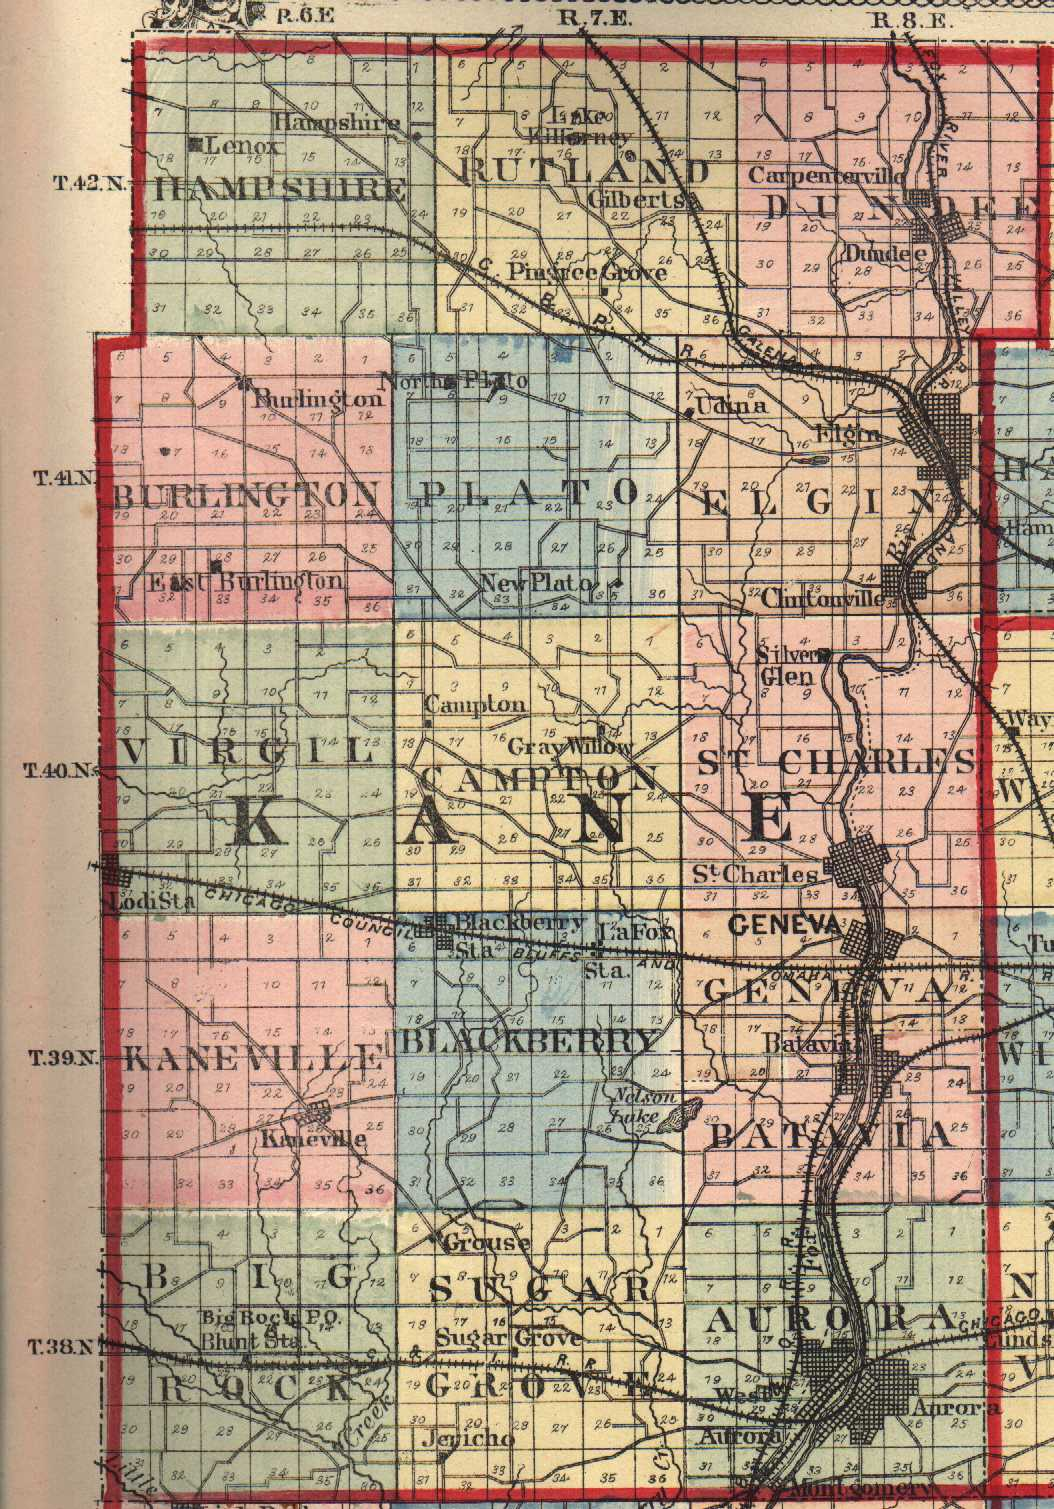 south dakota county map with Maps on SOUTH DAKOTA moreover Philadelphia Area Map furthermore 1003777417 in addition Funding Sources also Mt powder.